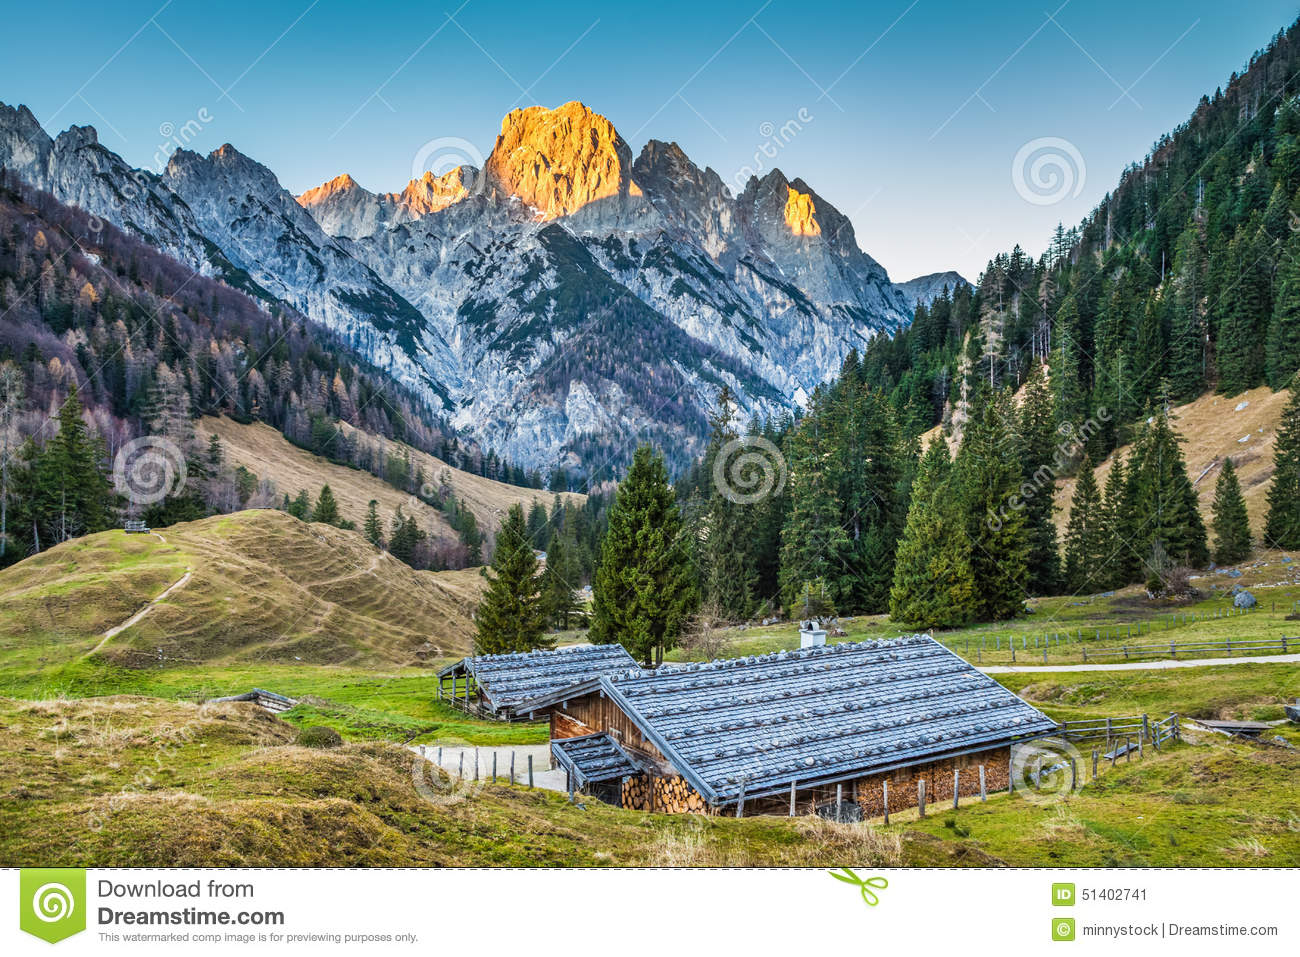 beau paysage dans les alpes avec les chalets traditionnels de montagne photo stock image 51402741. Black Bedroom Furniture Sets. Home Design Ideas